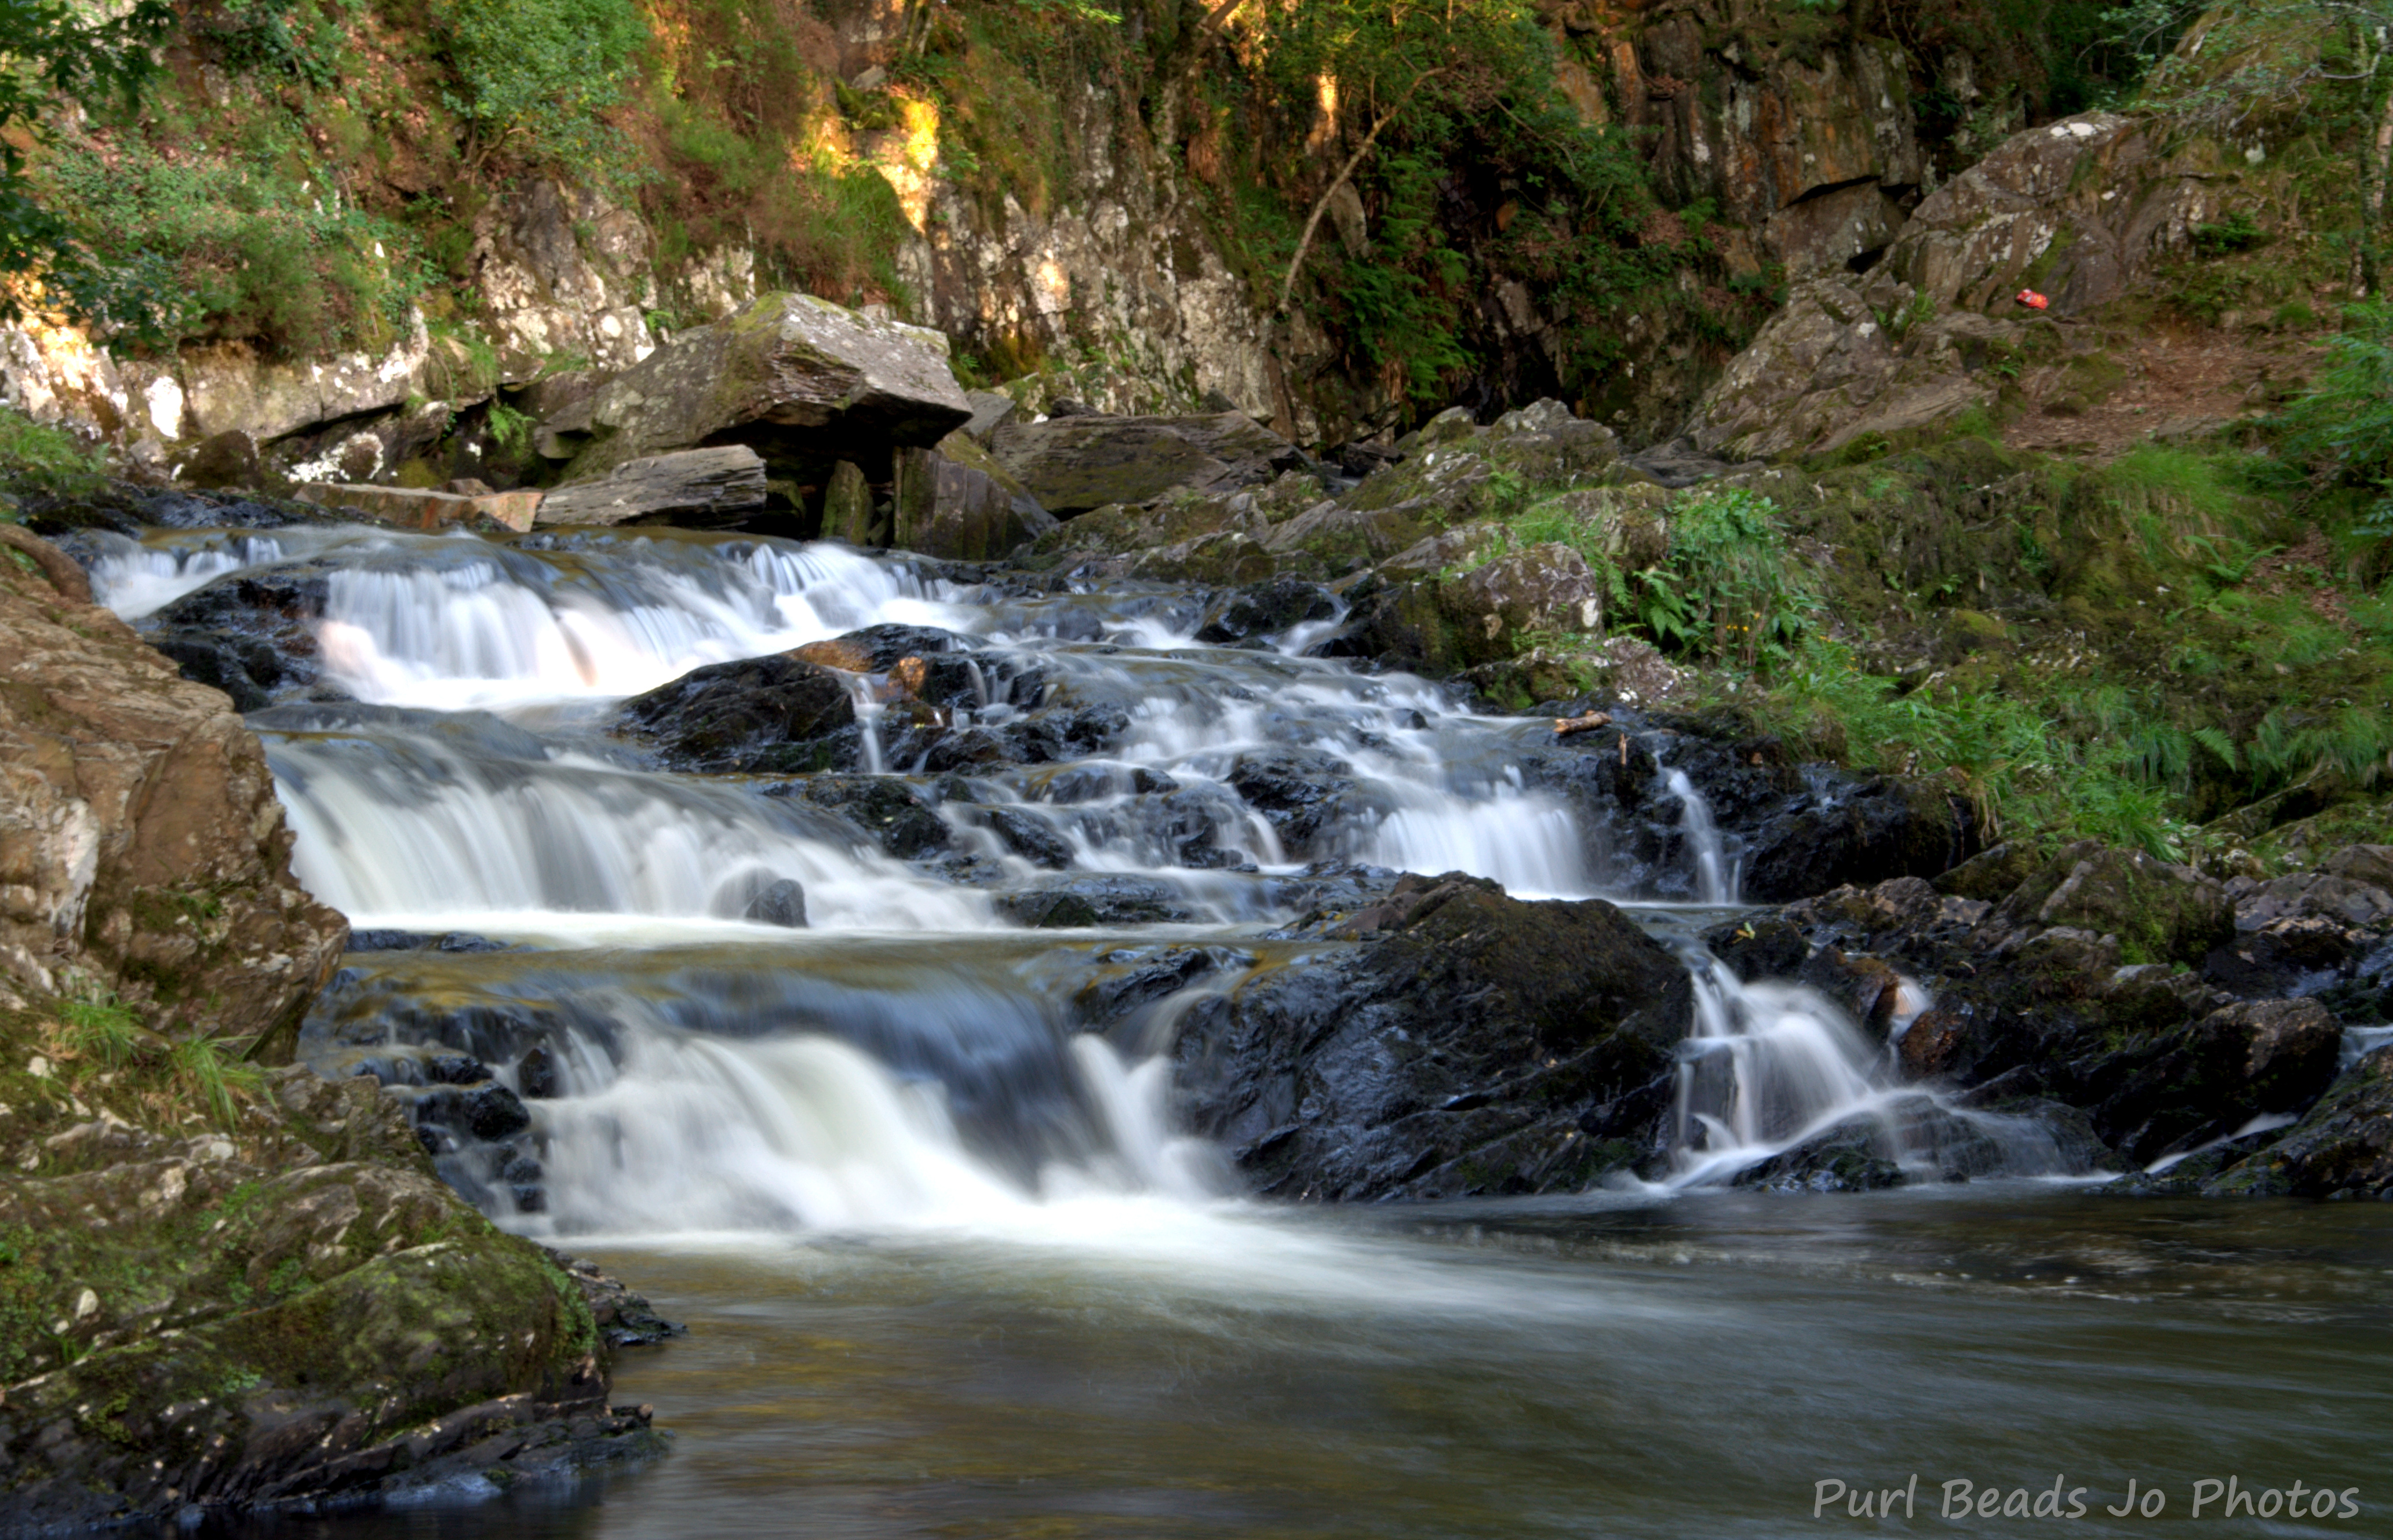 This is from the bottom of the waterfall near the campsite